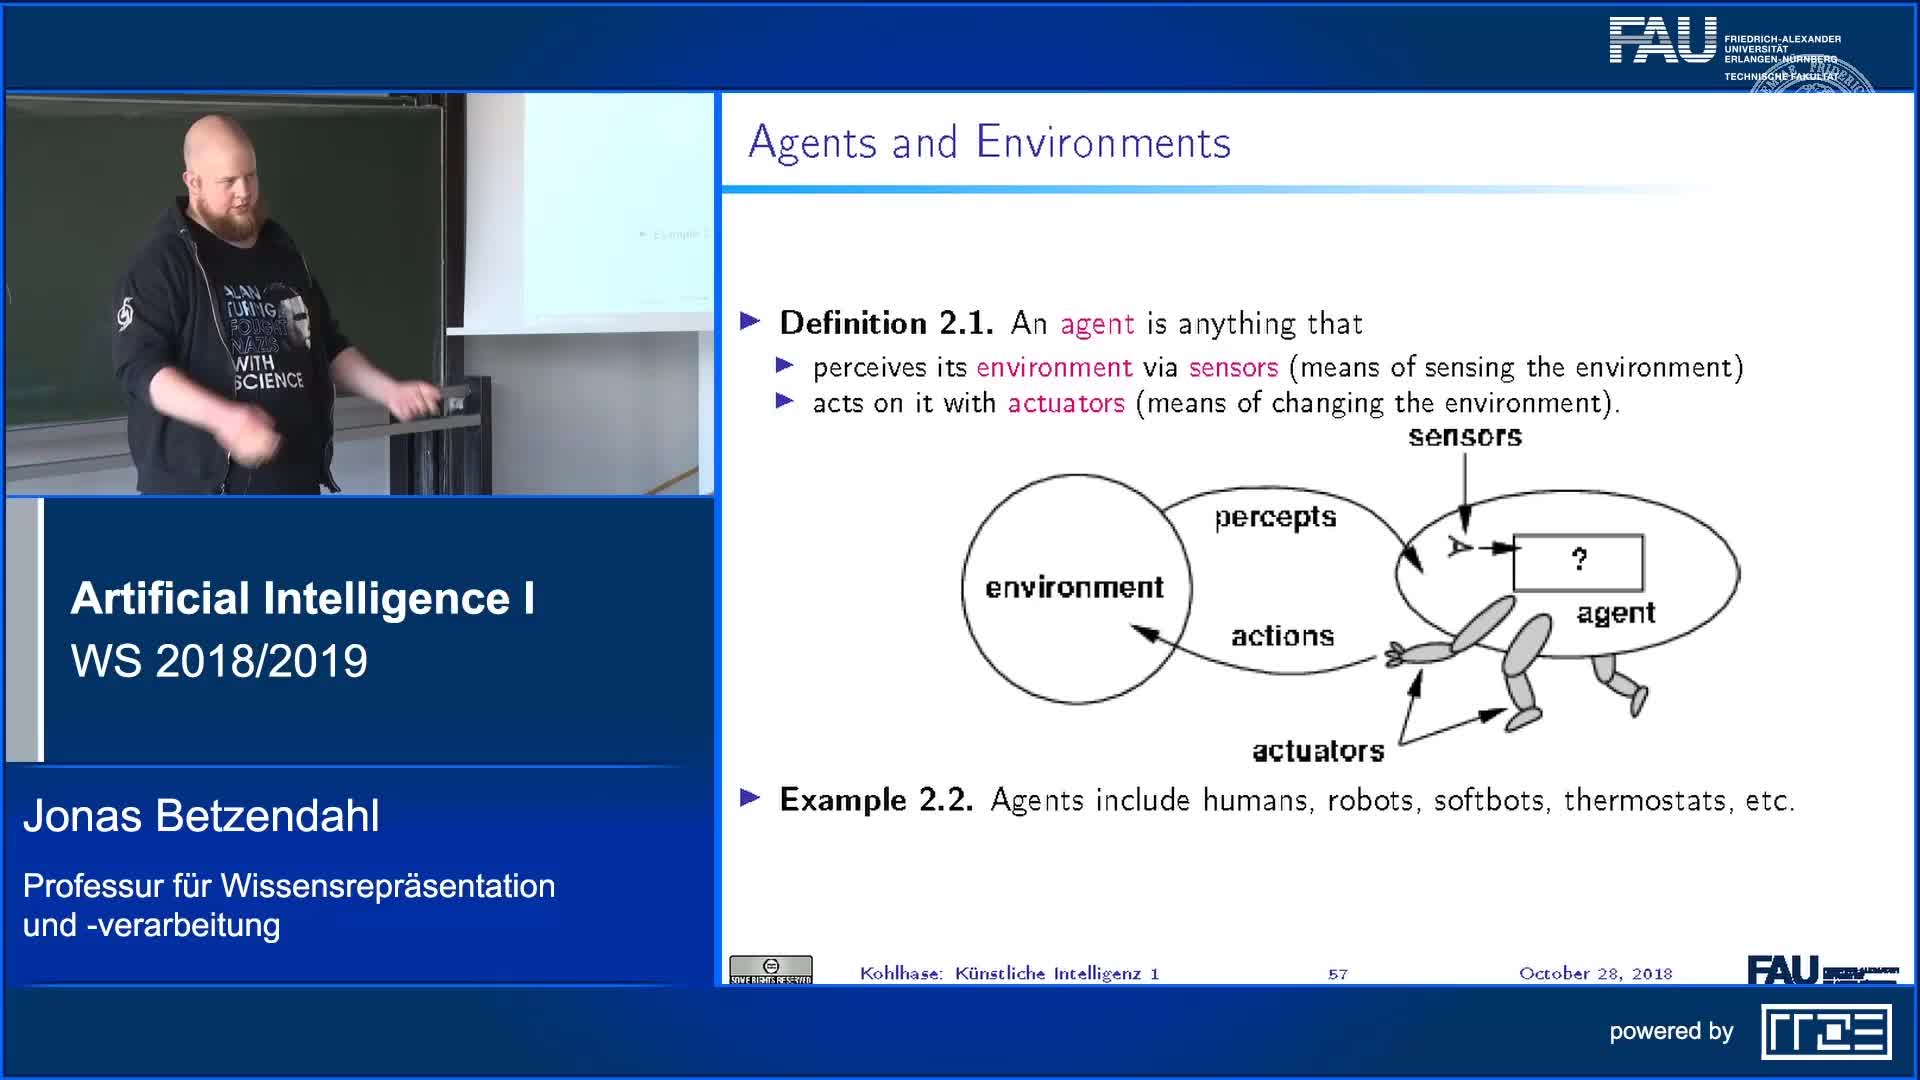 Agents and Environments as a Framework for AI preview image